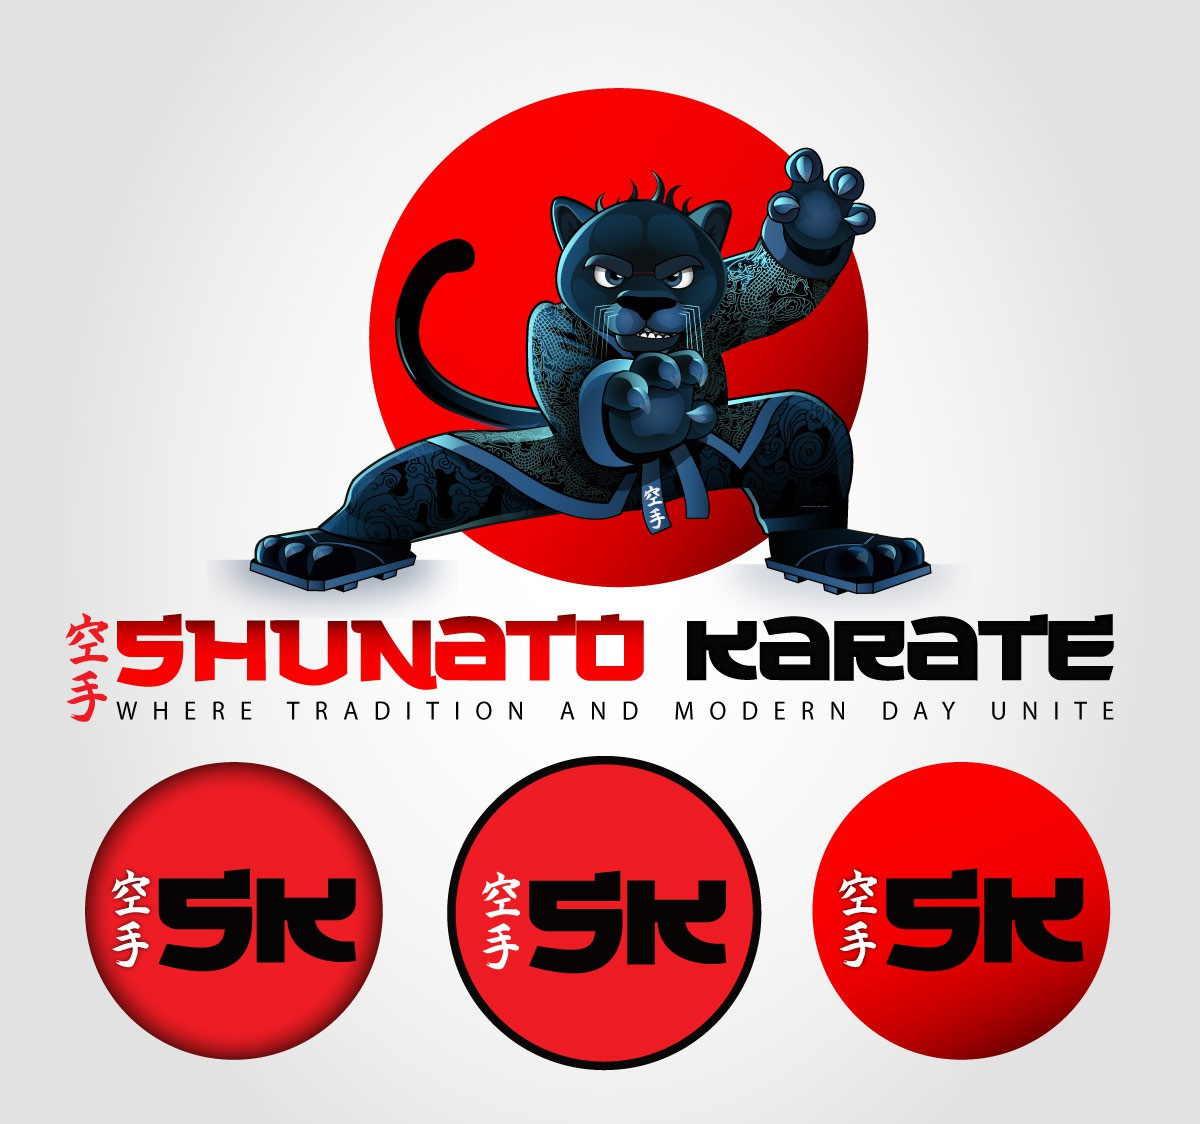 New logo wanted for Shunato Karate